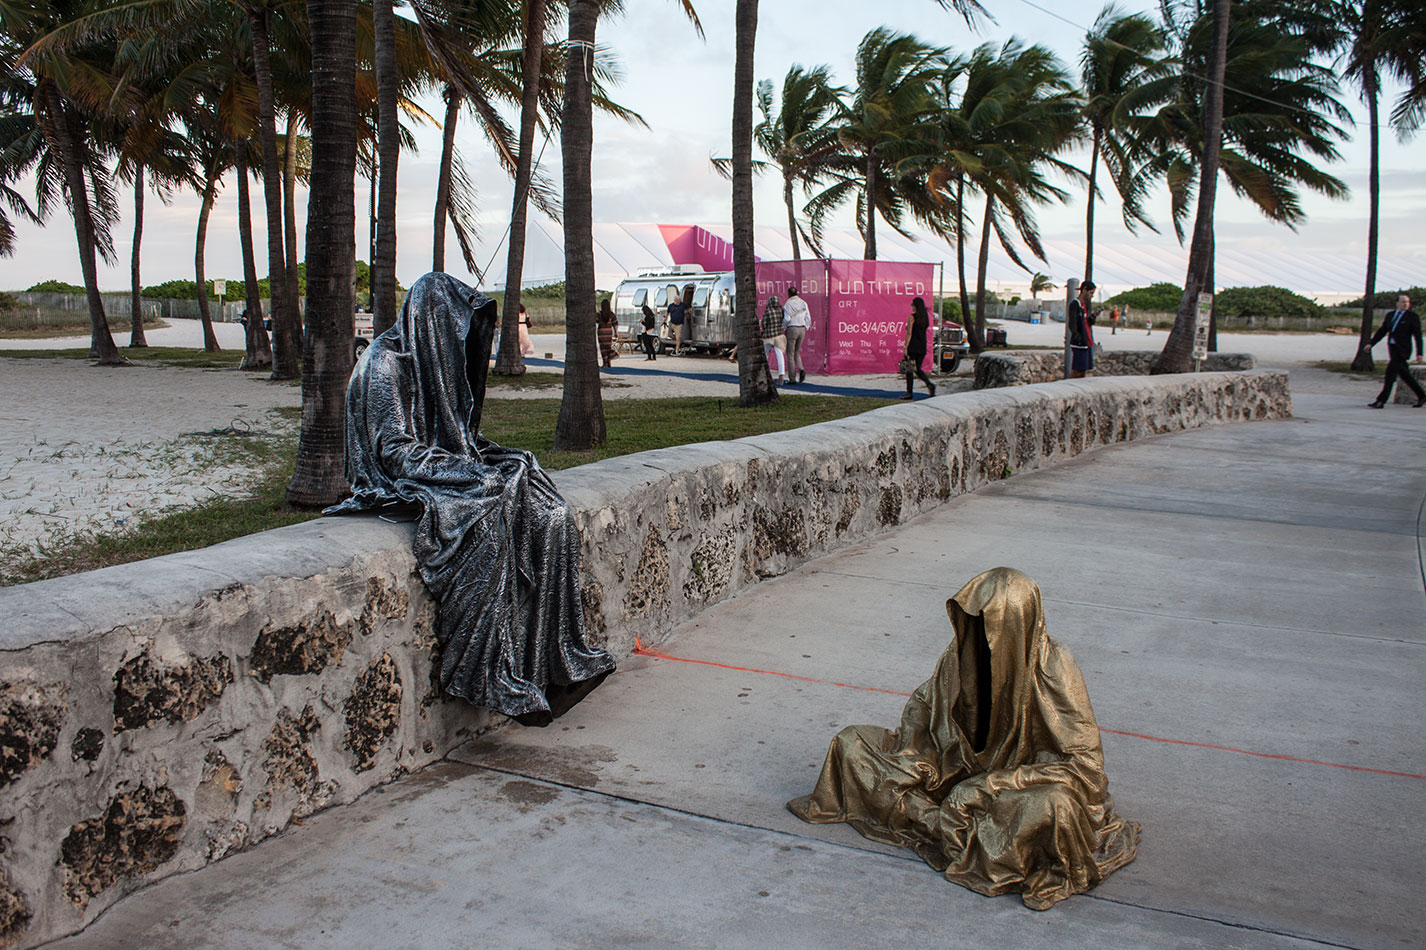 art-basel-miami-beach-fair-usa-florida-guardians-of-time-manfred-kili-kielnhofer-contemporary-fine-art-modern-arts-design-antiques-sculpture-6182